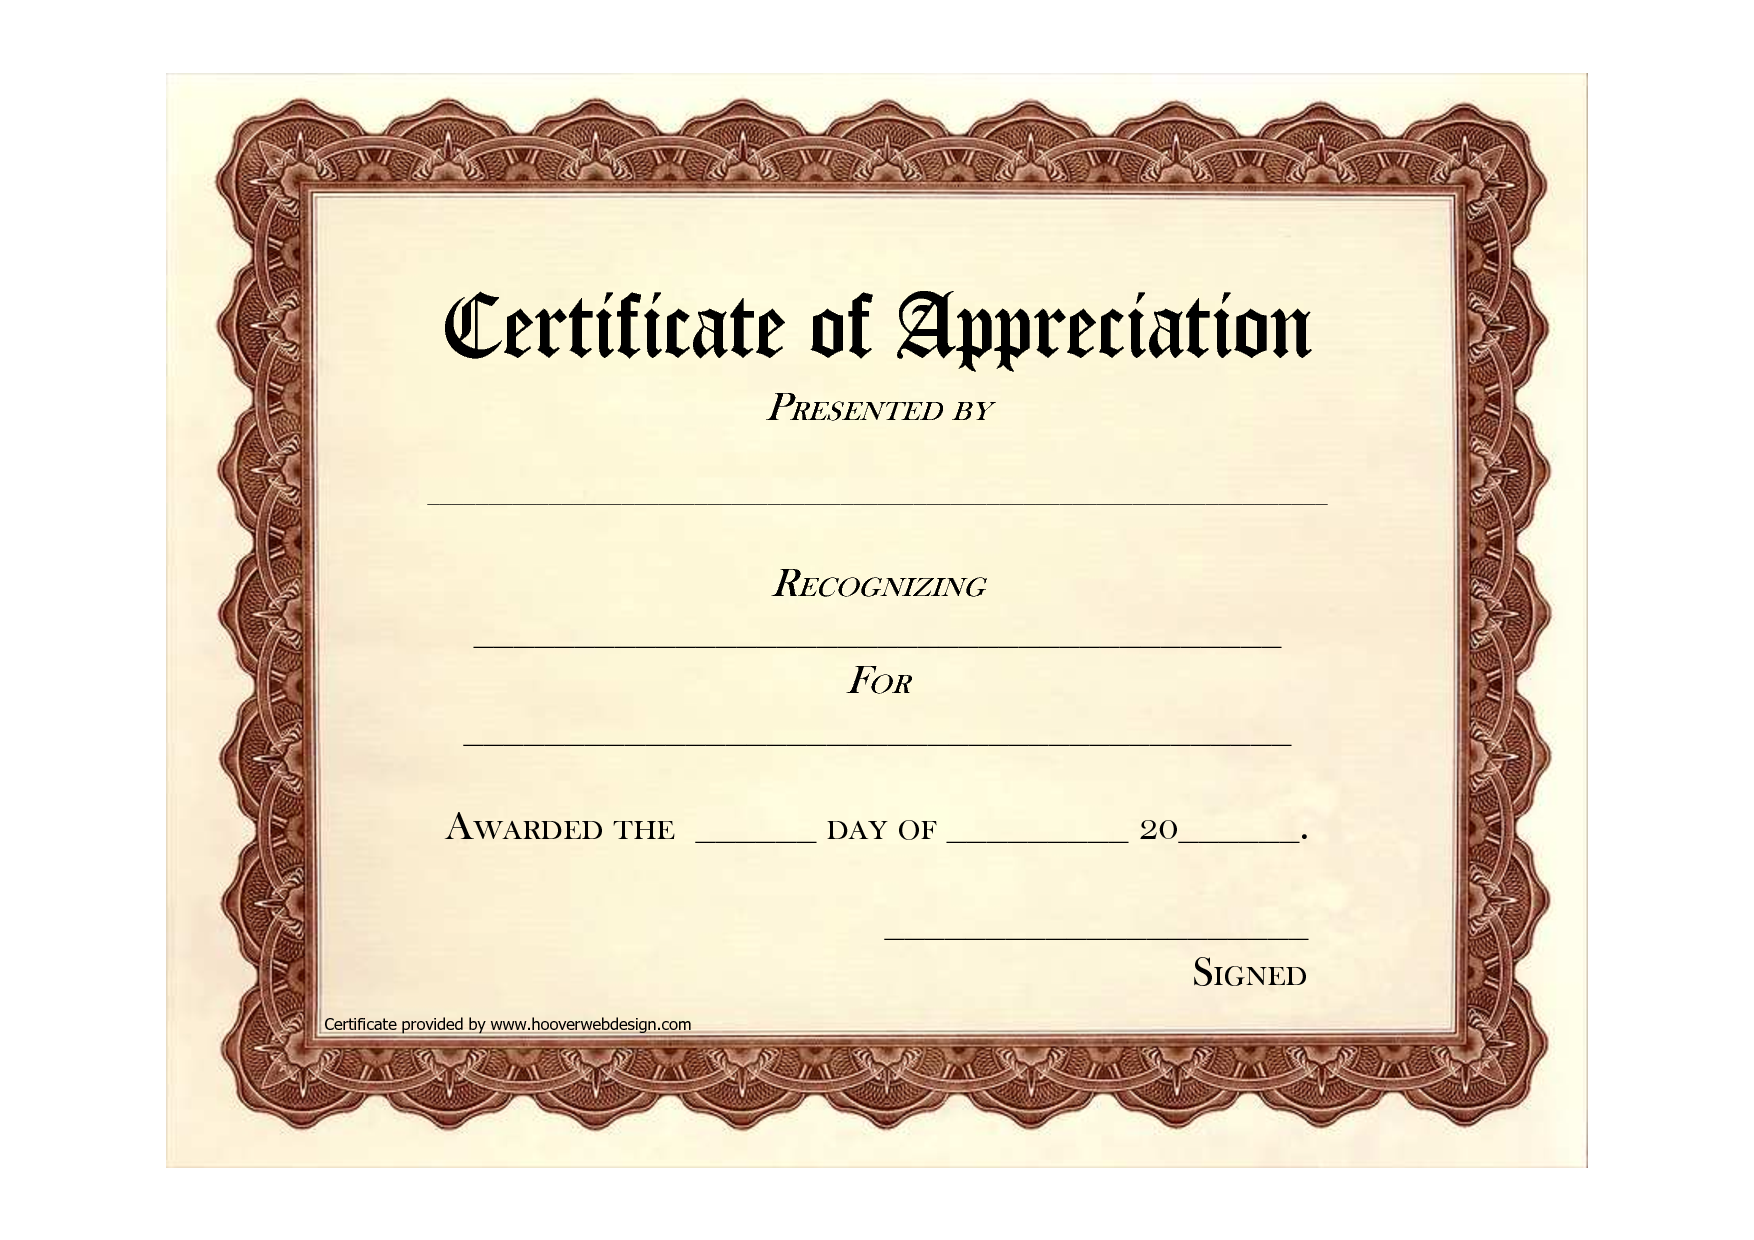 Free certificate of appreciation award certificate of appreciation formal certificate of completion template example with editable recipient and date also brown background and frame pattern thogati yadclub Images